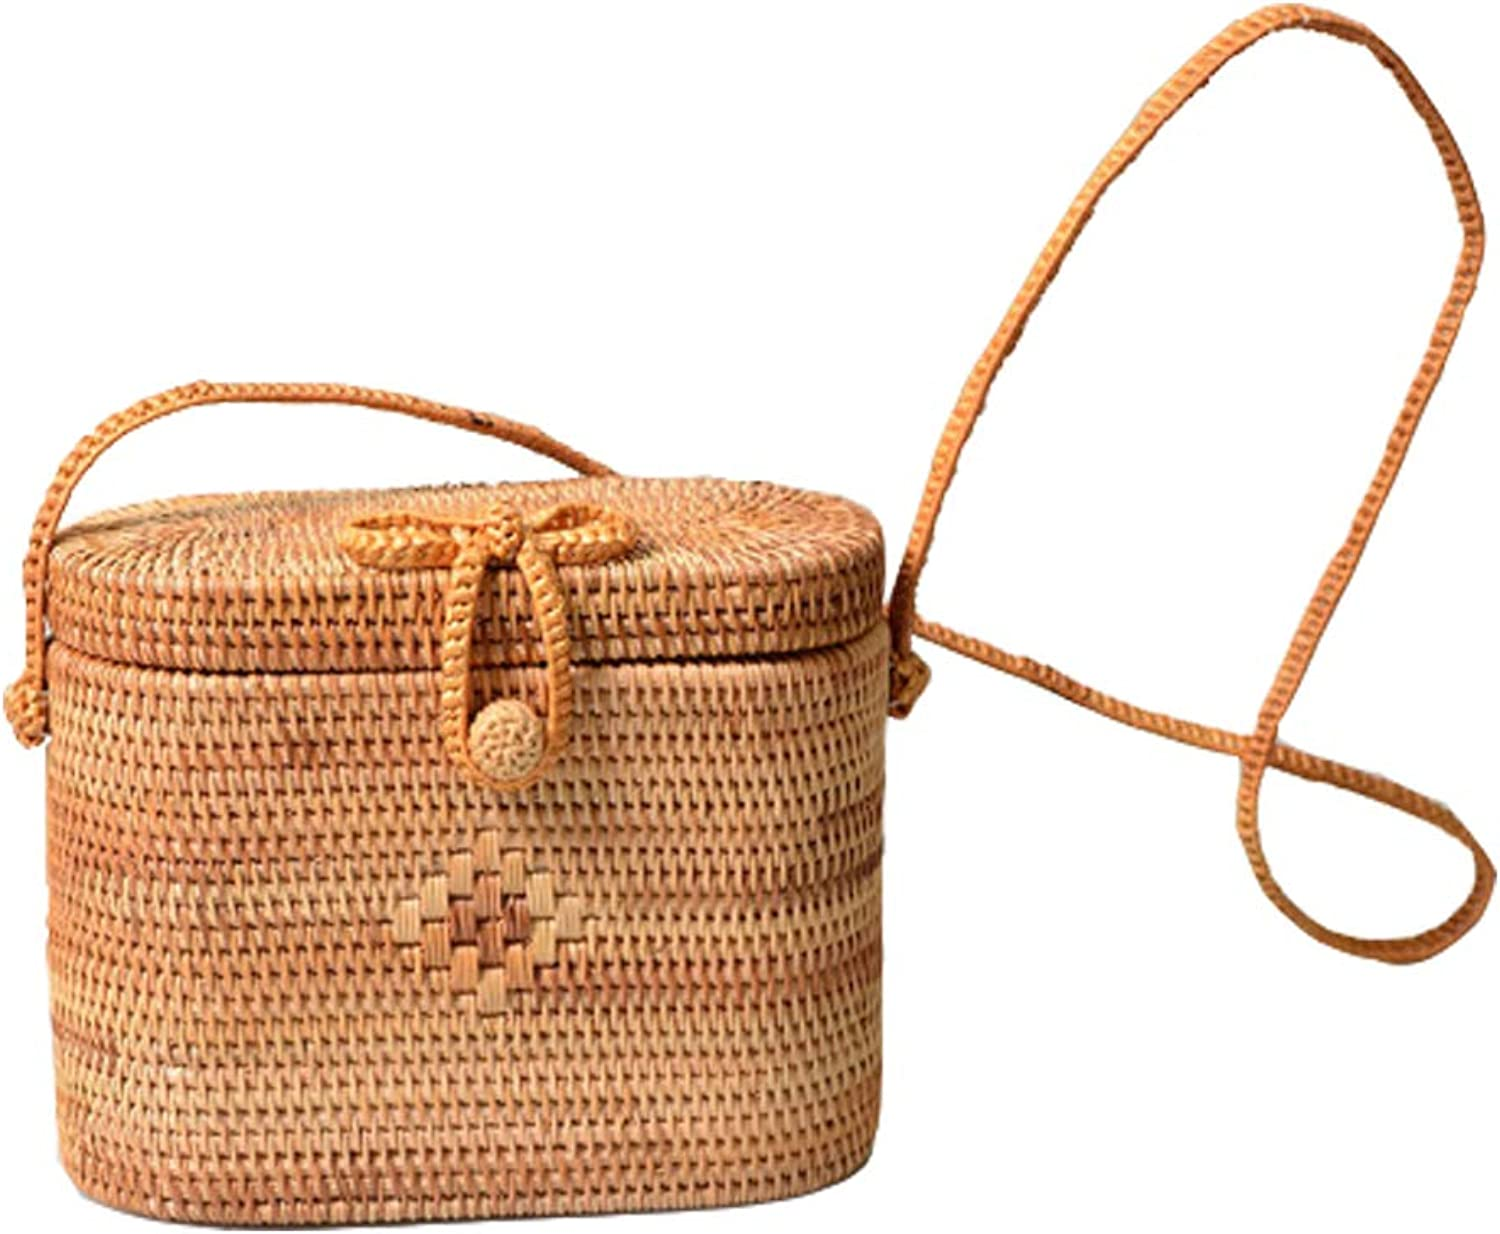 YAOXI Rattan Bag, oval gewebte Stroh Stroh Stroh Tasche, Klappe Oval Tropical Beach Crossbody Bag, Reise Shopping Daily Use, 7,87 (L)  3,93  (W)  7,08 (H) B07K7J4XPJ  Attraktiv und langlebig bf7bec